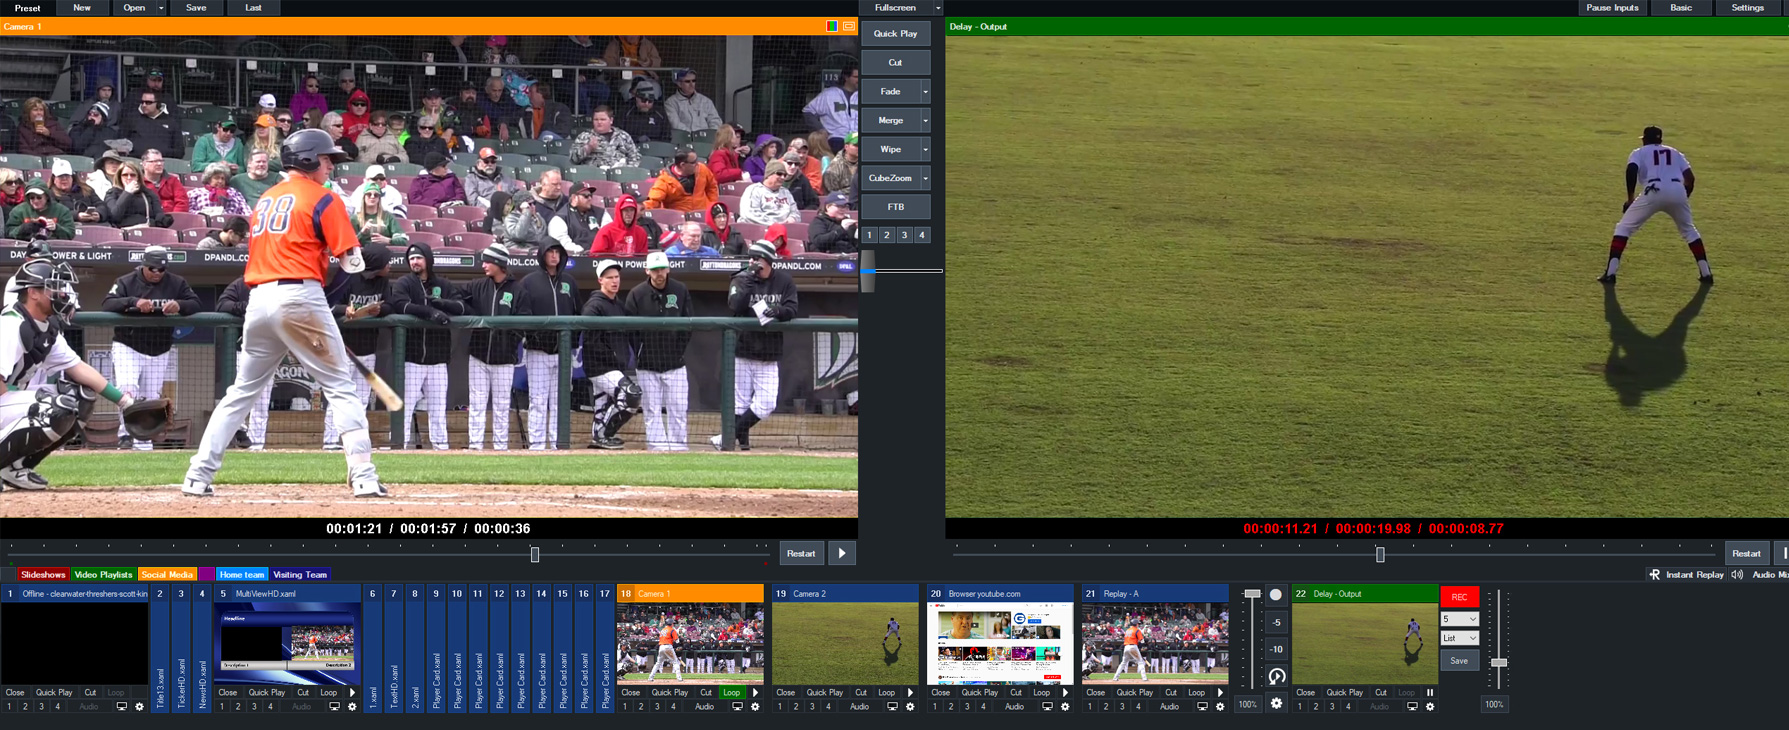 <h2>Video Delay / Instant Replay</h2>